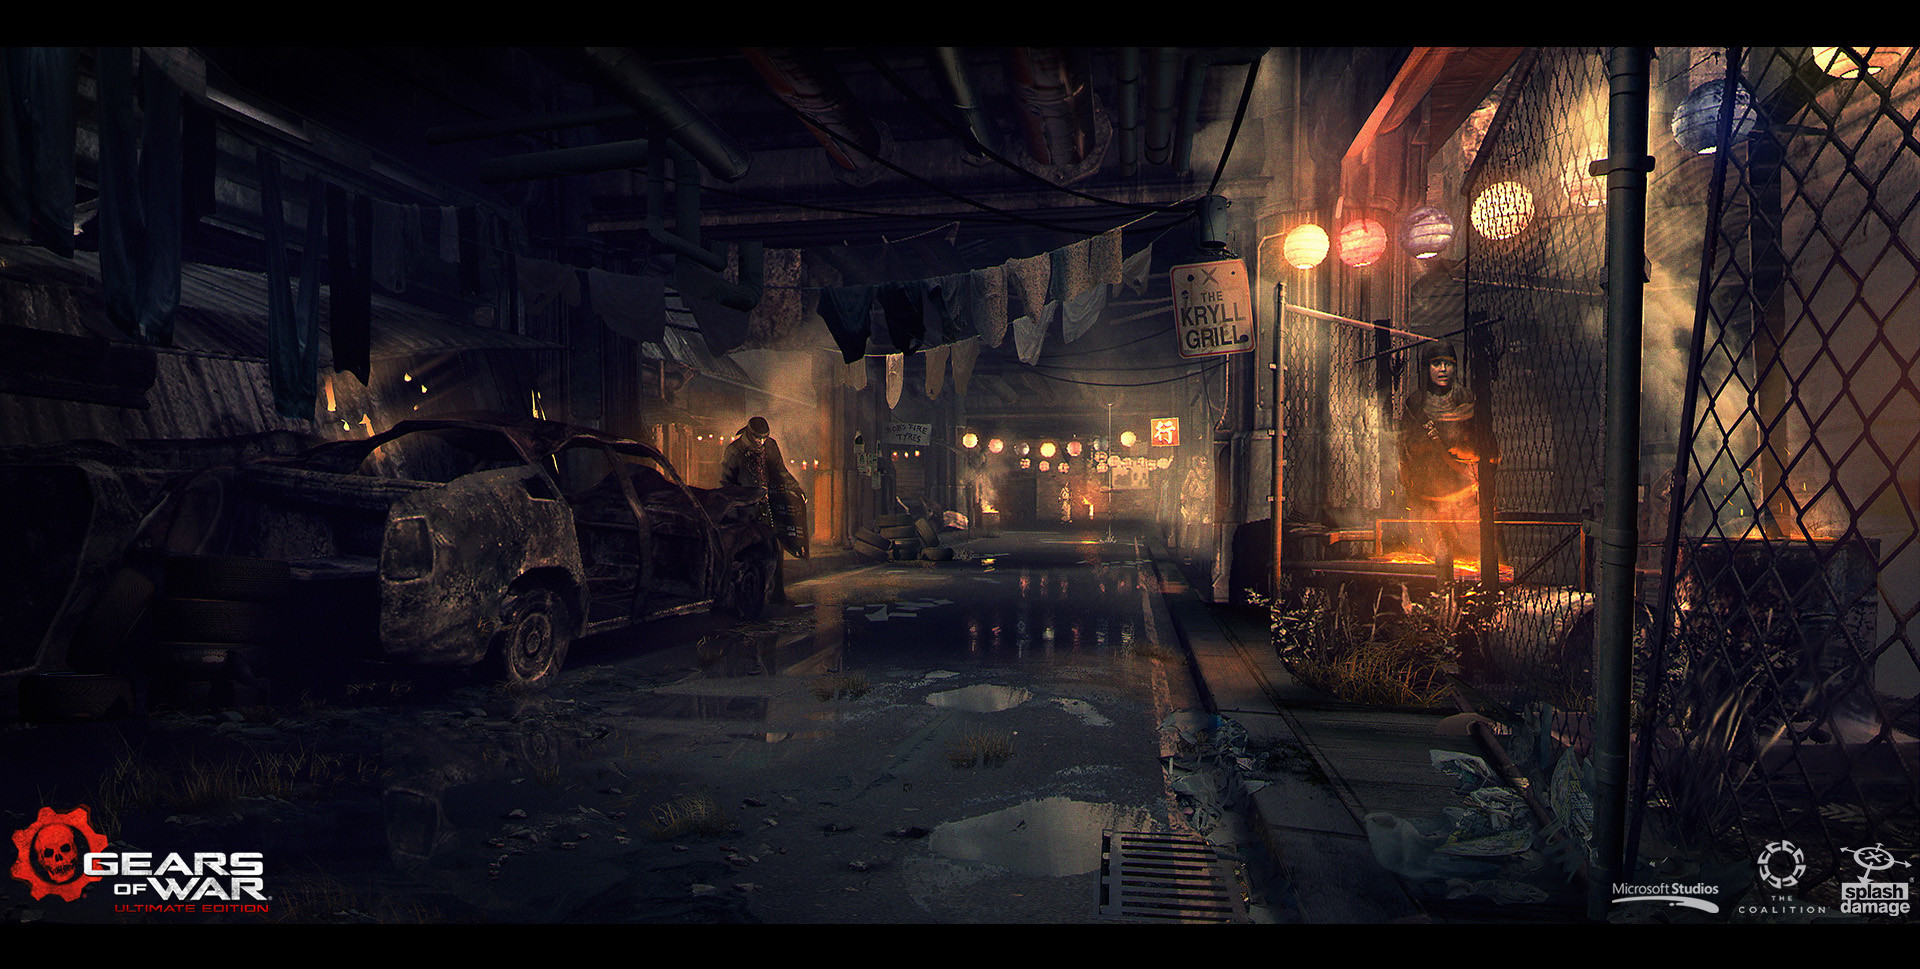 Gears of War Concept Art